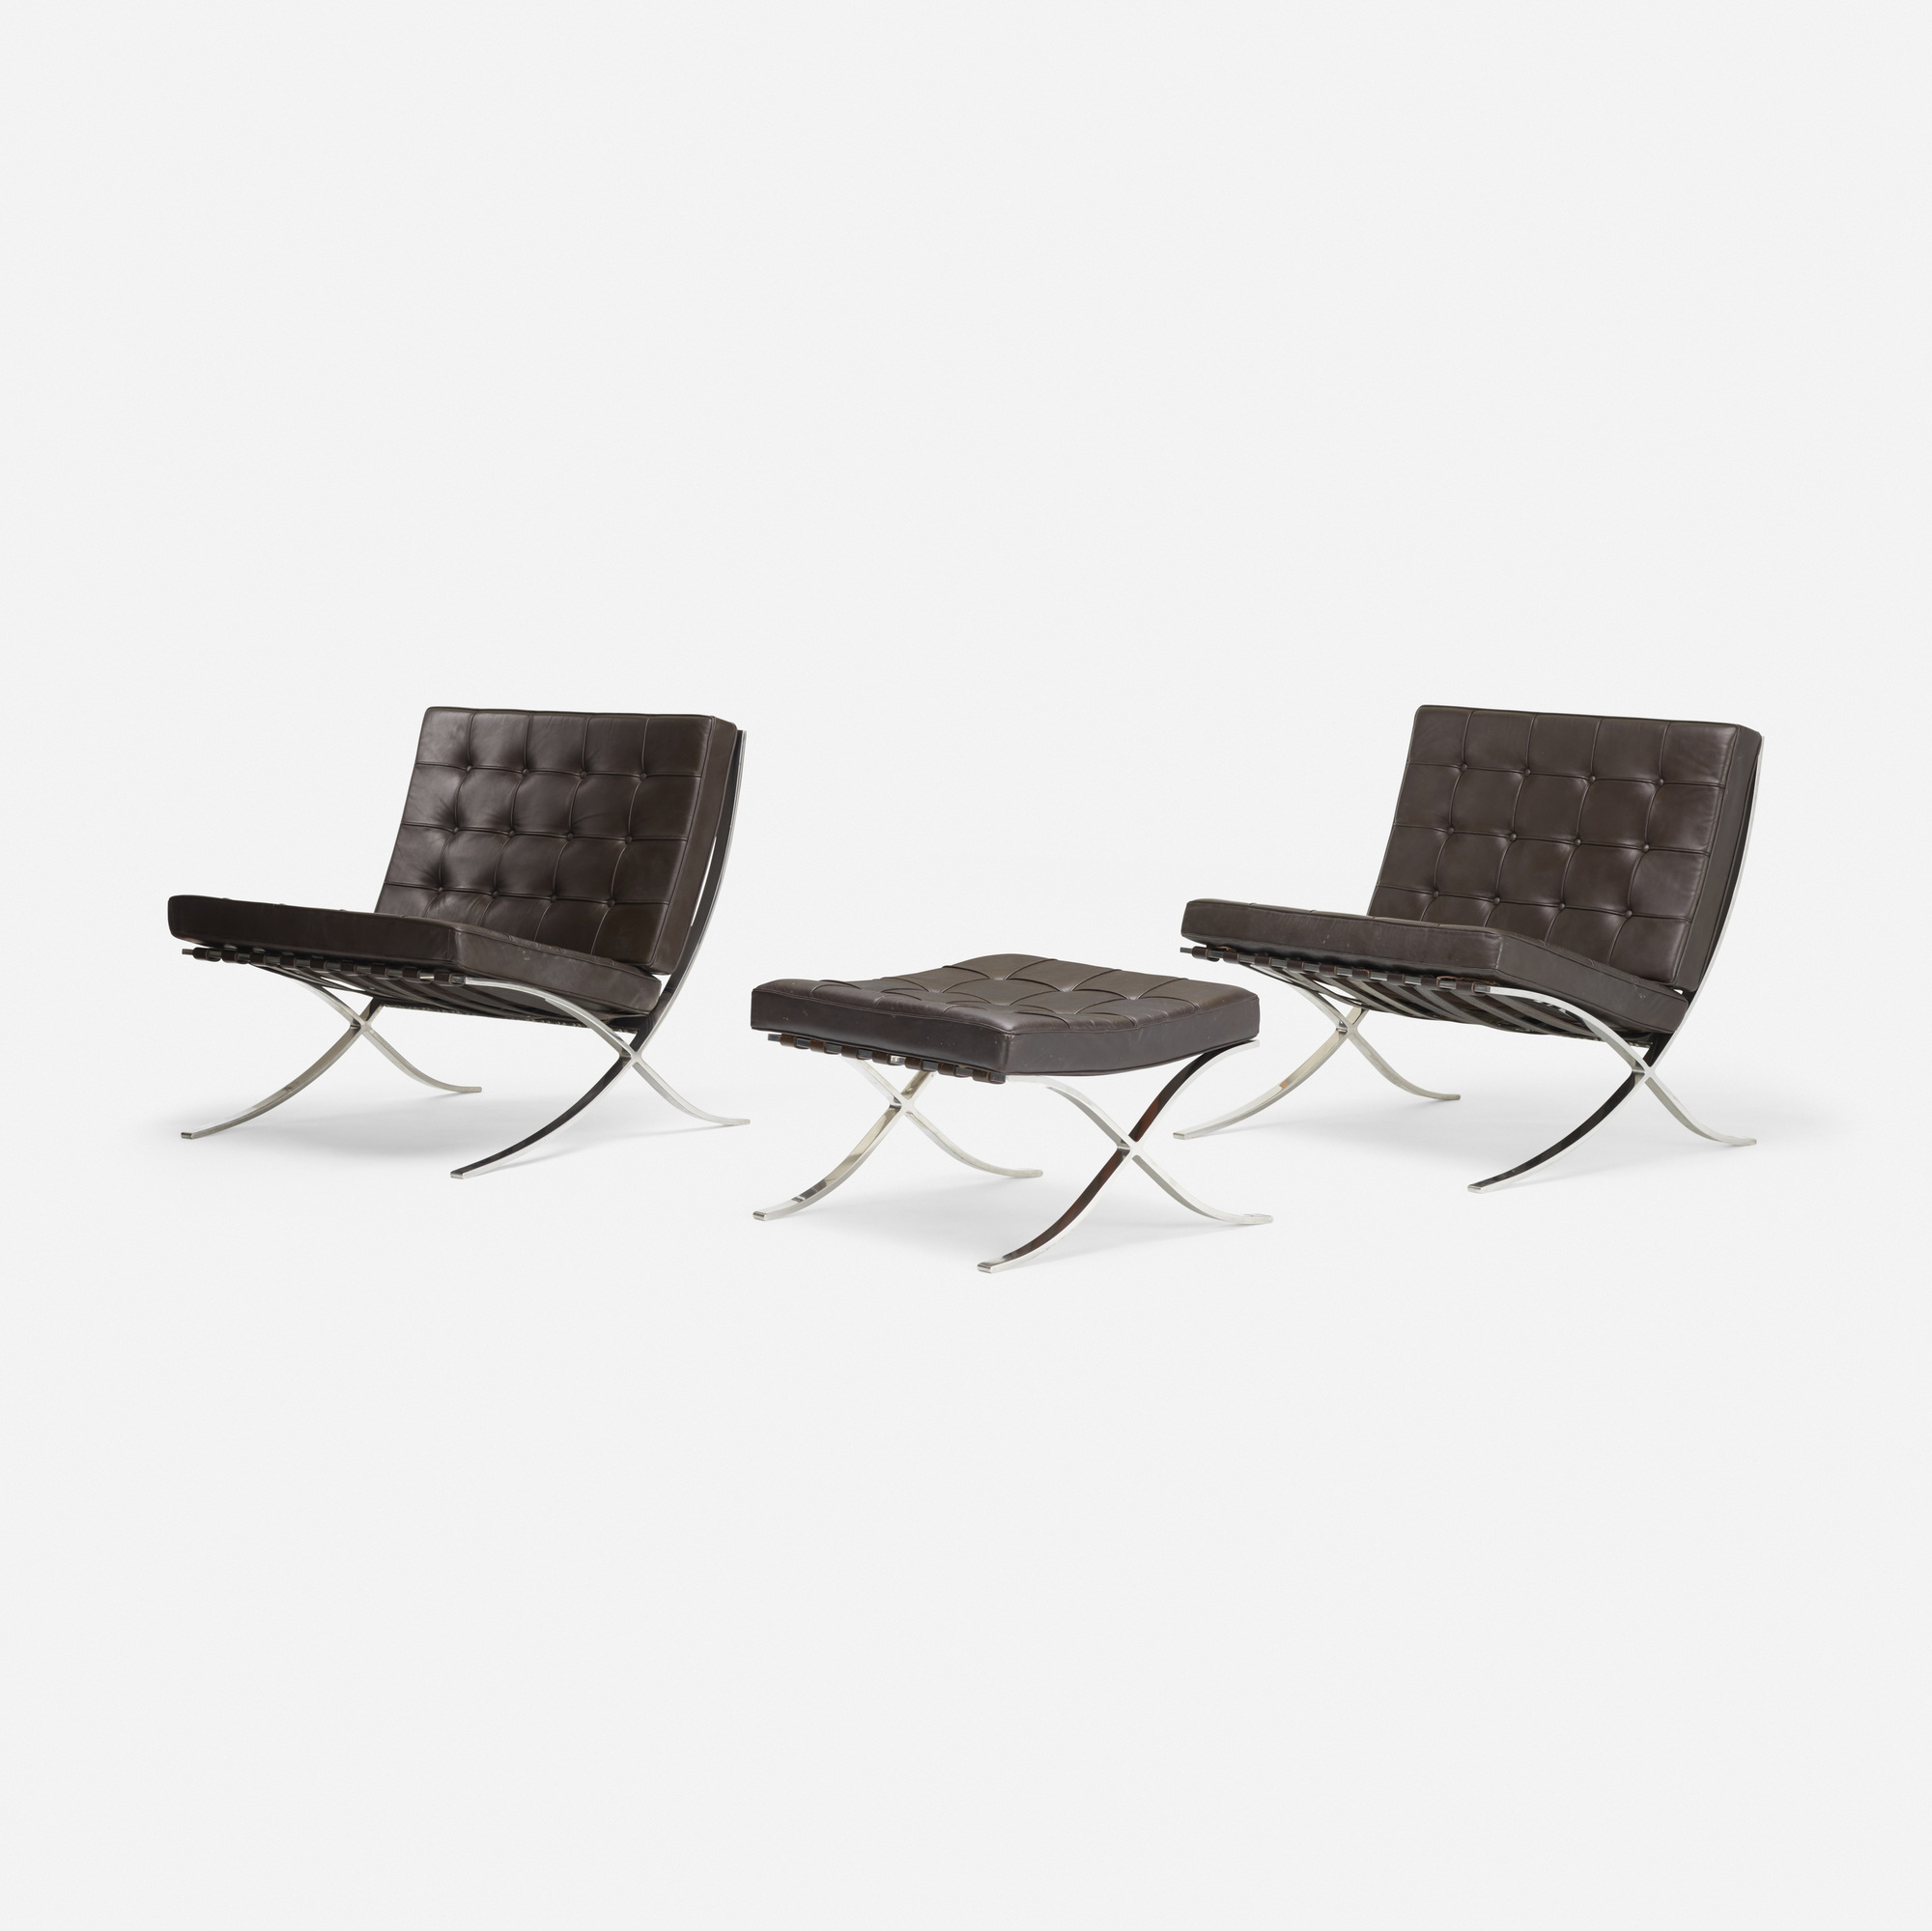 230: Ludwig Mies van der Rohe / pair of Barcelona chairs and ottoman (2 of 3)